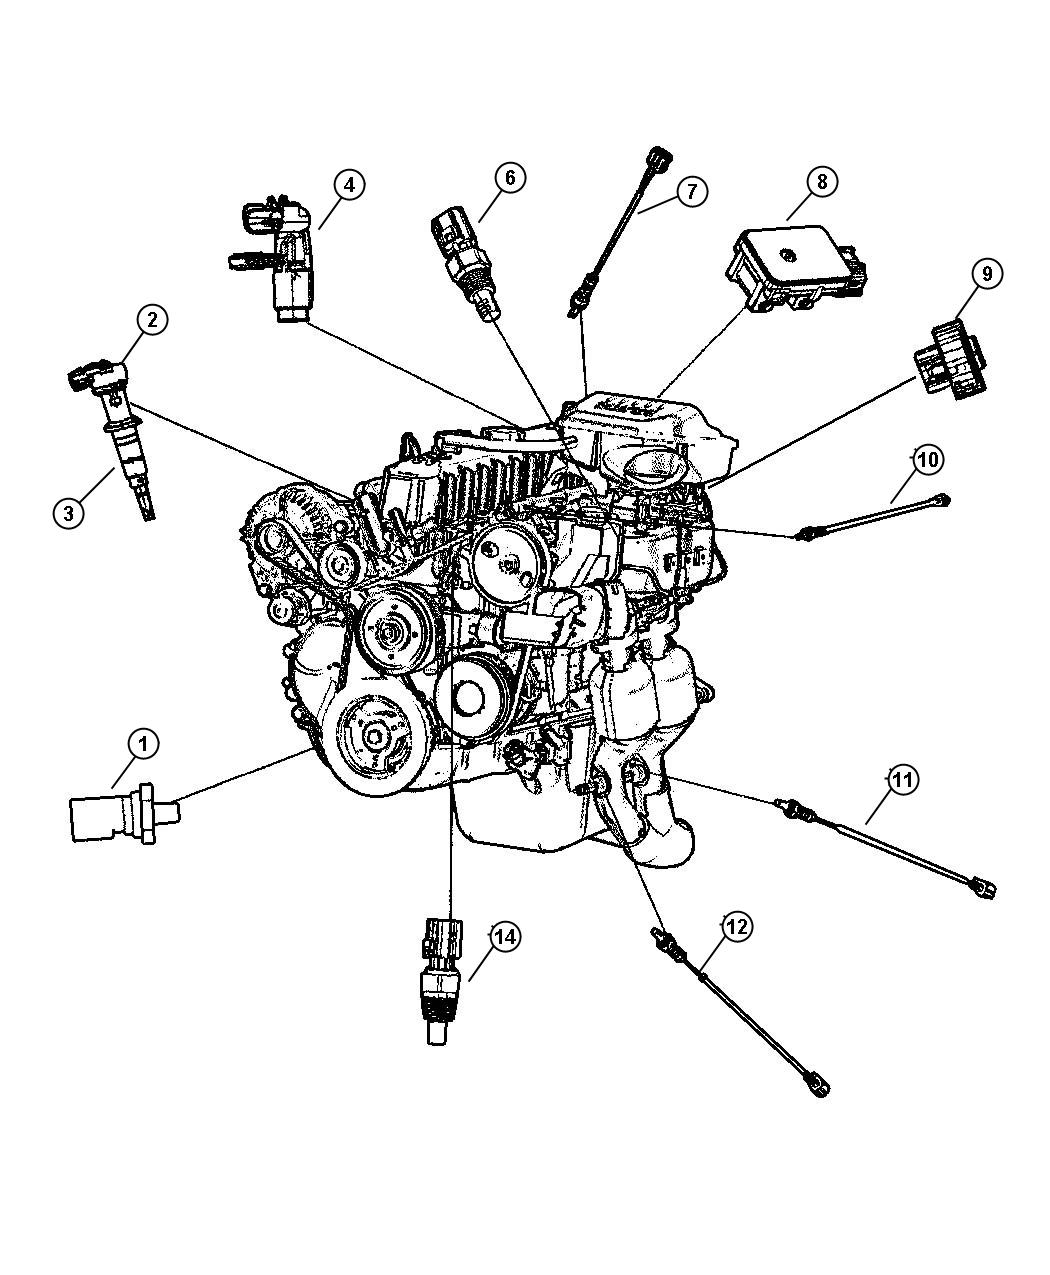 Jeep Cherokee 4 0 Engine Emissions Diagram